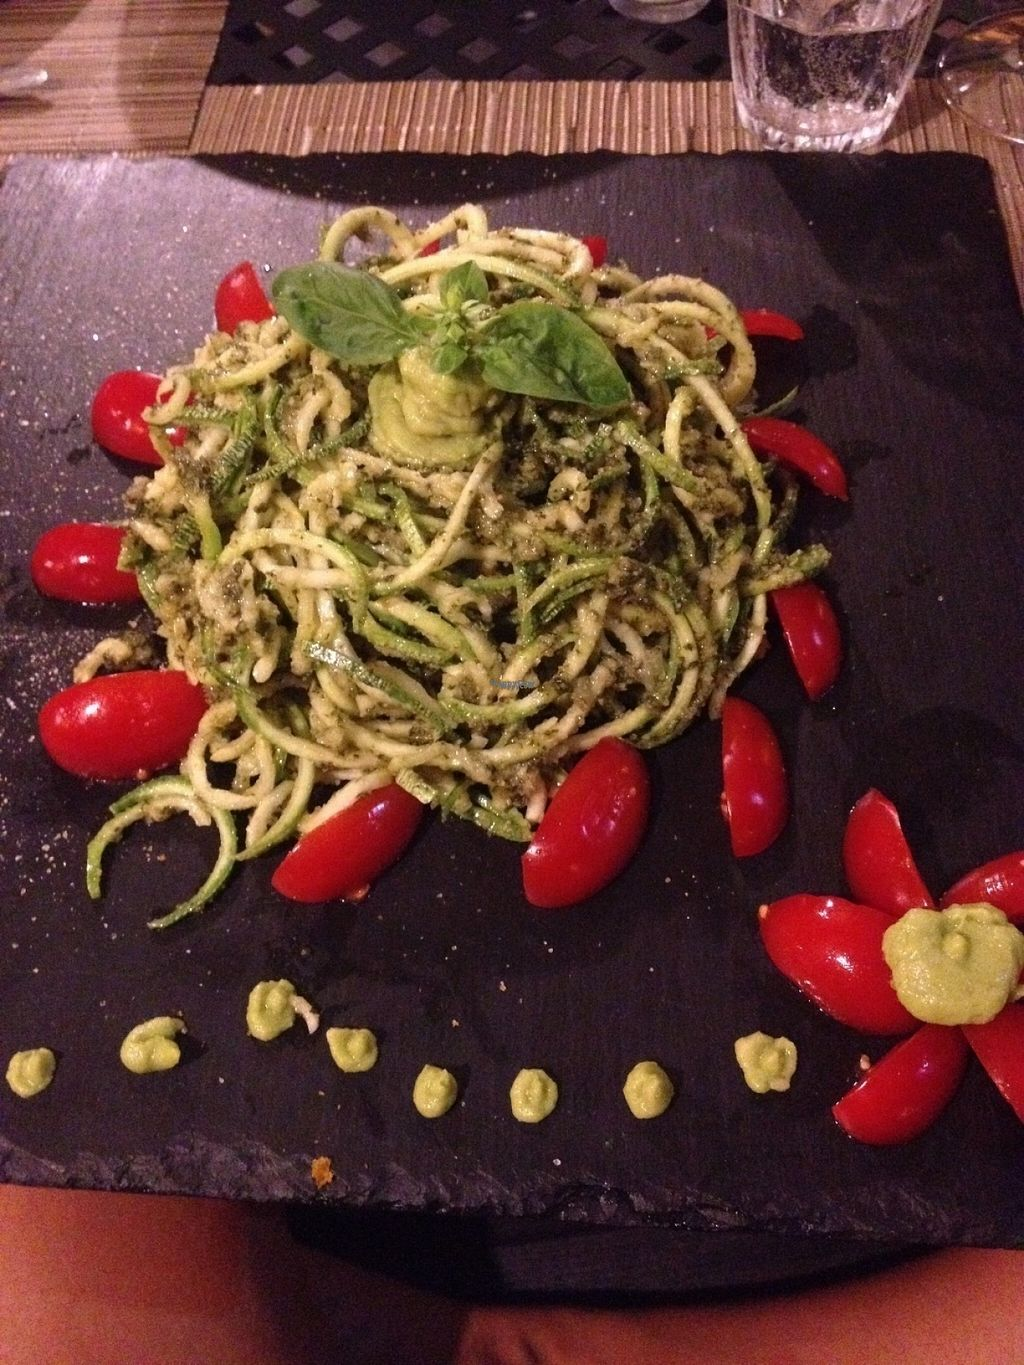 "Photo of Albisbe4  by <a href=""/members/profile/SophieSerex"">SophieSerex</a> <br/>zucchini noodles with sun ripened datternino cherry tomatoes and a deliciously creamy avocado and almond pesto <br/> August 15, 2016  - <a href='/contact/abuse/image/74465/169096'>Report</a>"